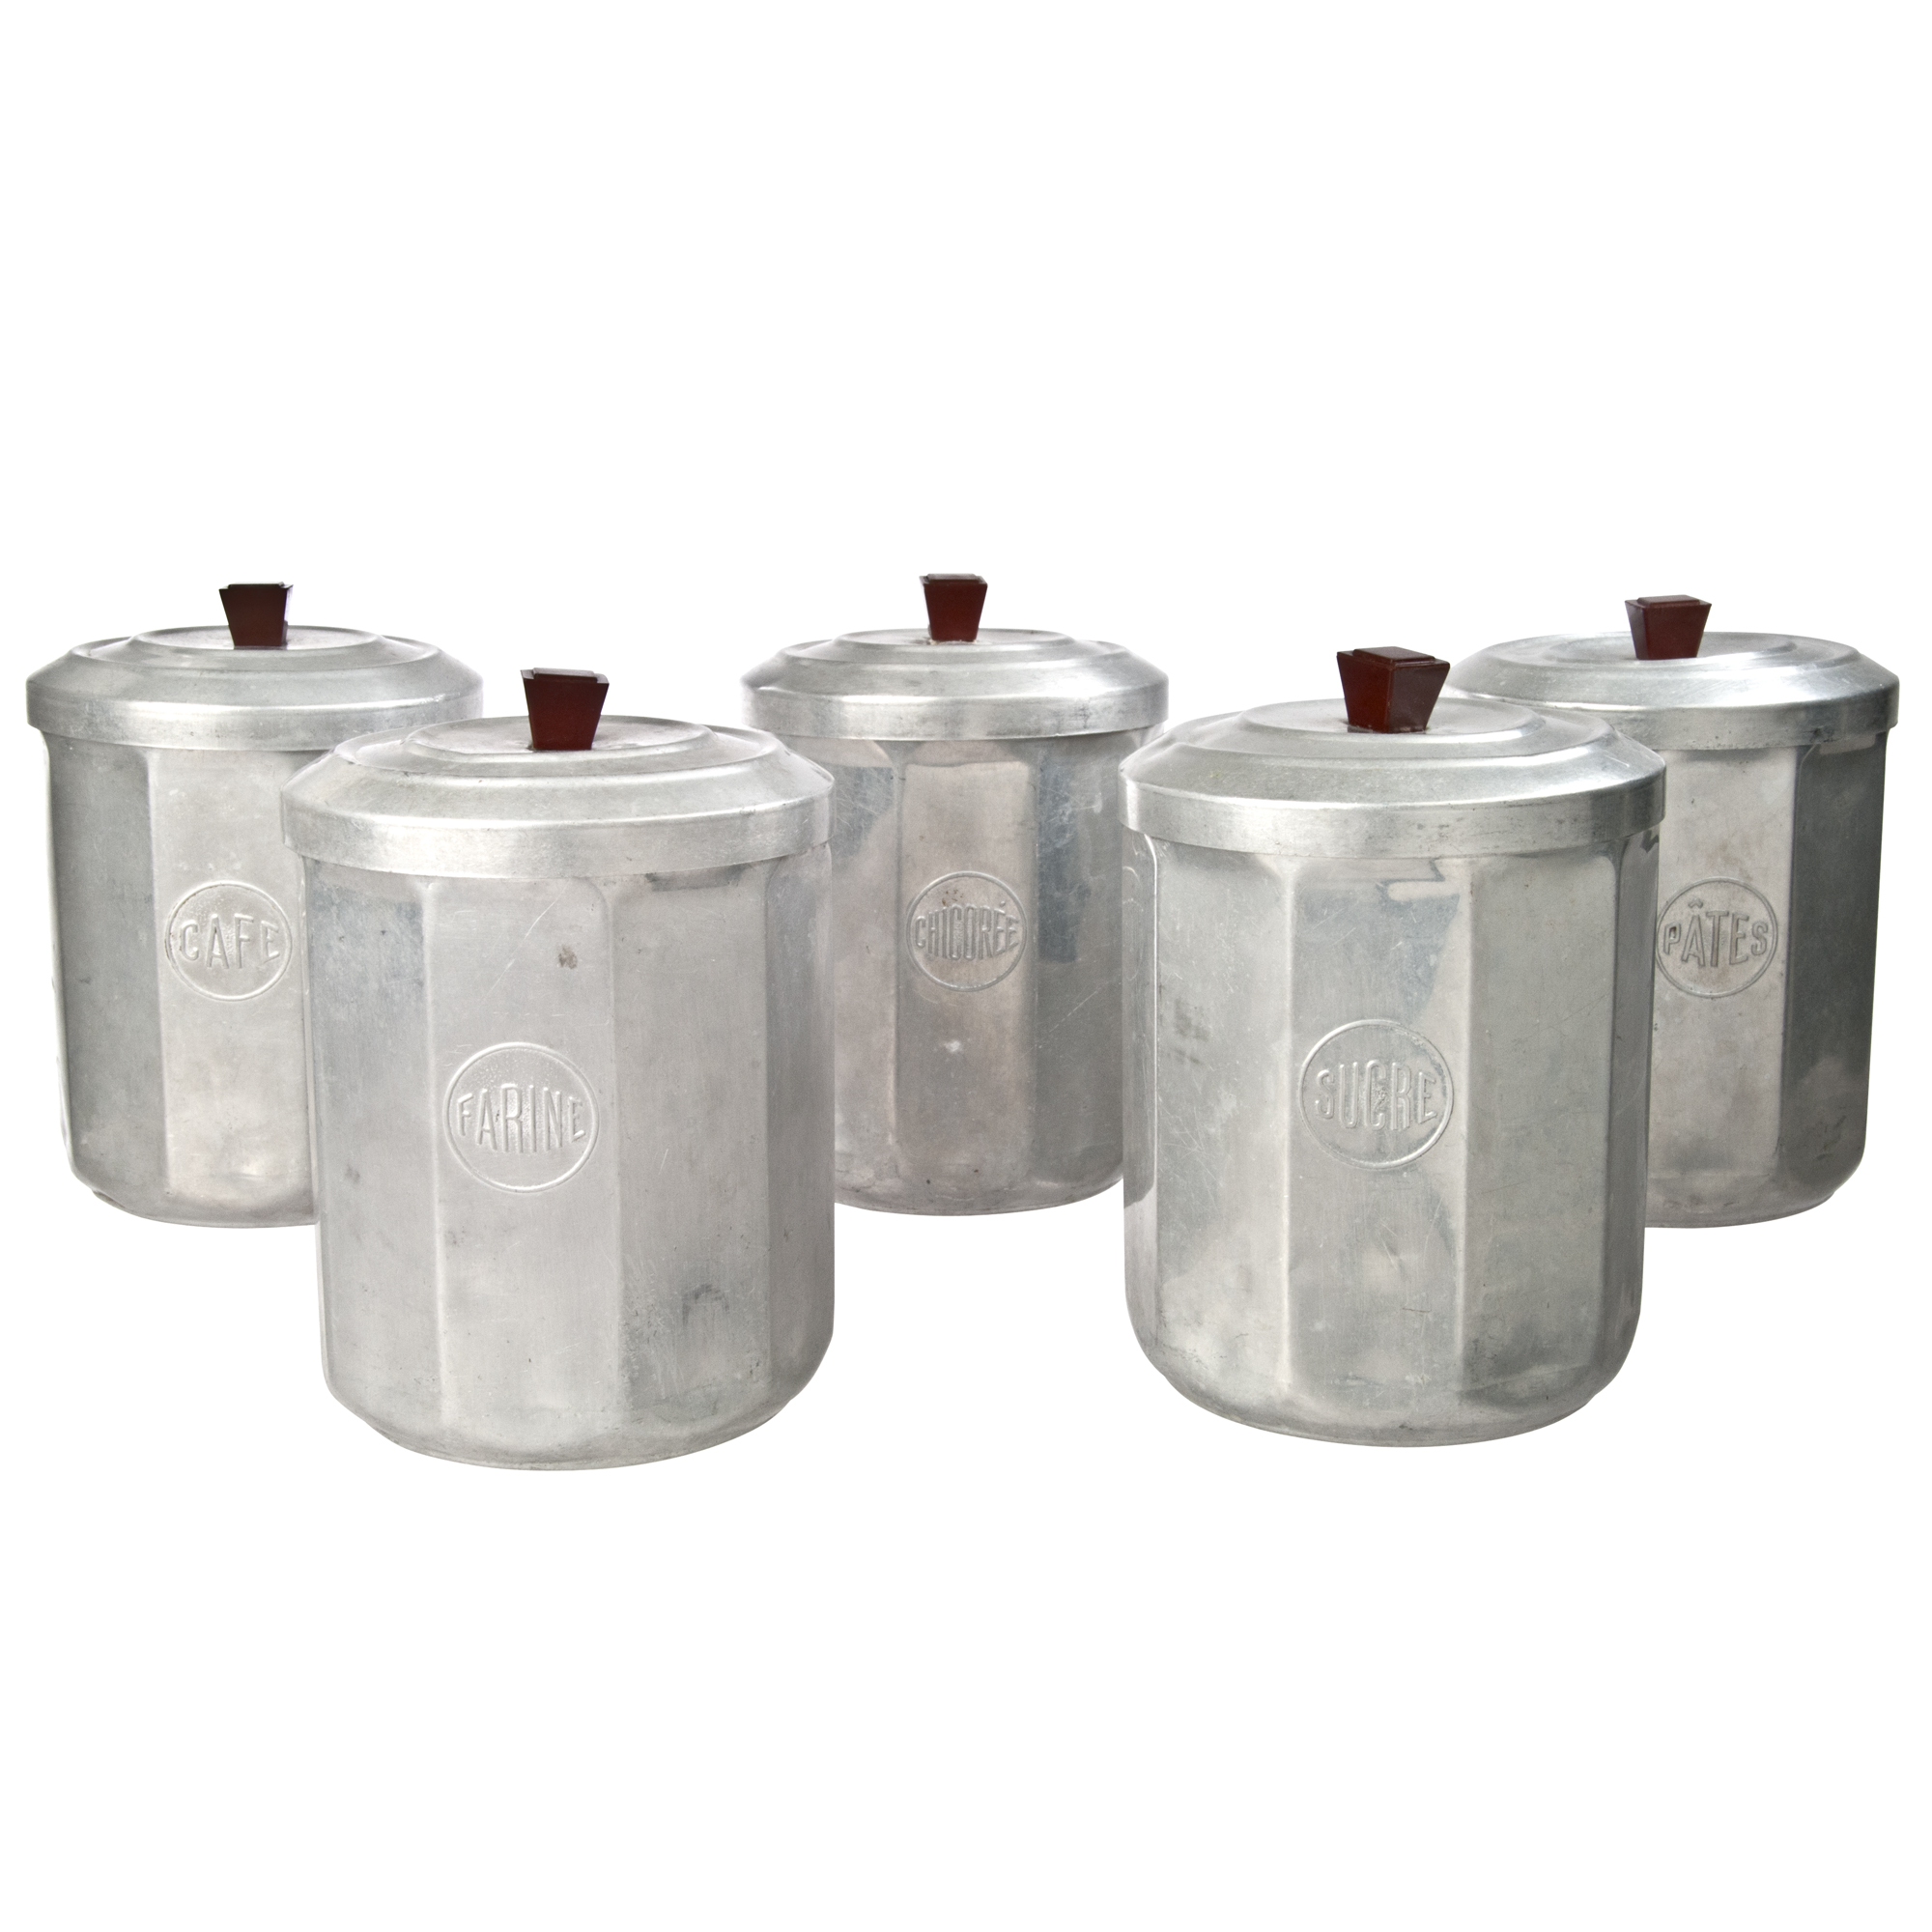 French Kitchen Canisters: French Aluminum Kitchen Canisters - Set Of 5